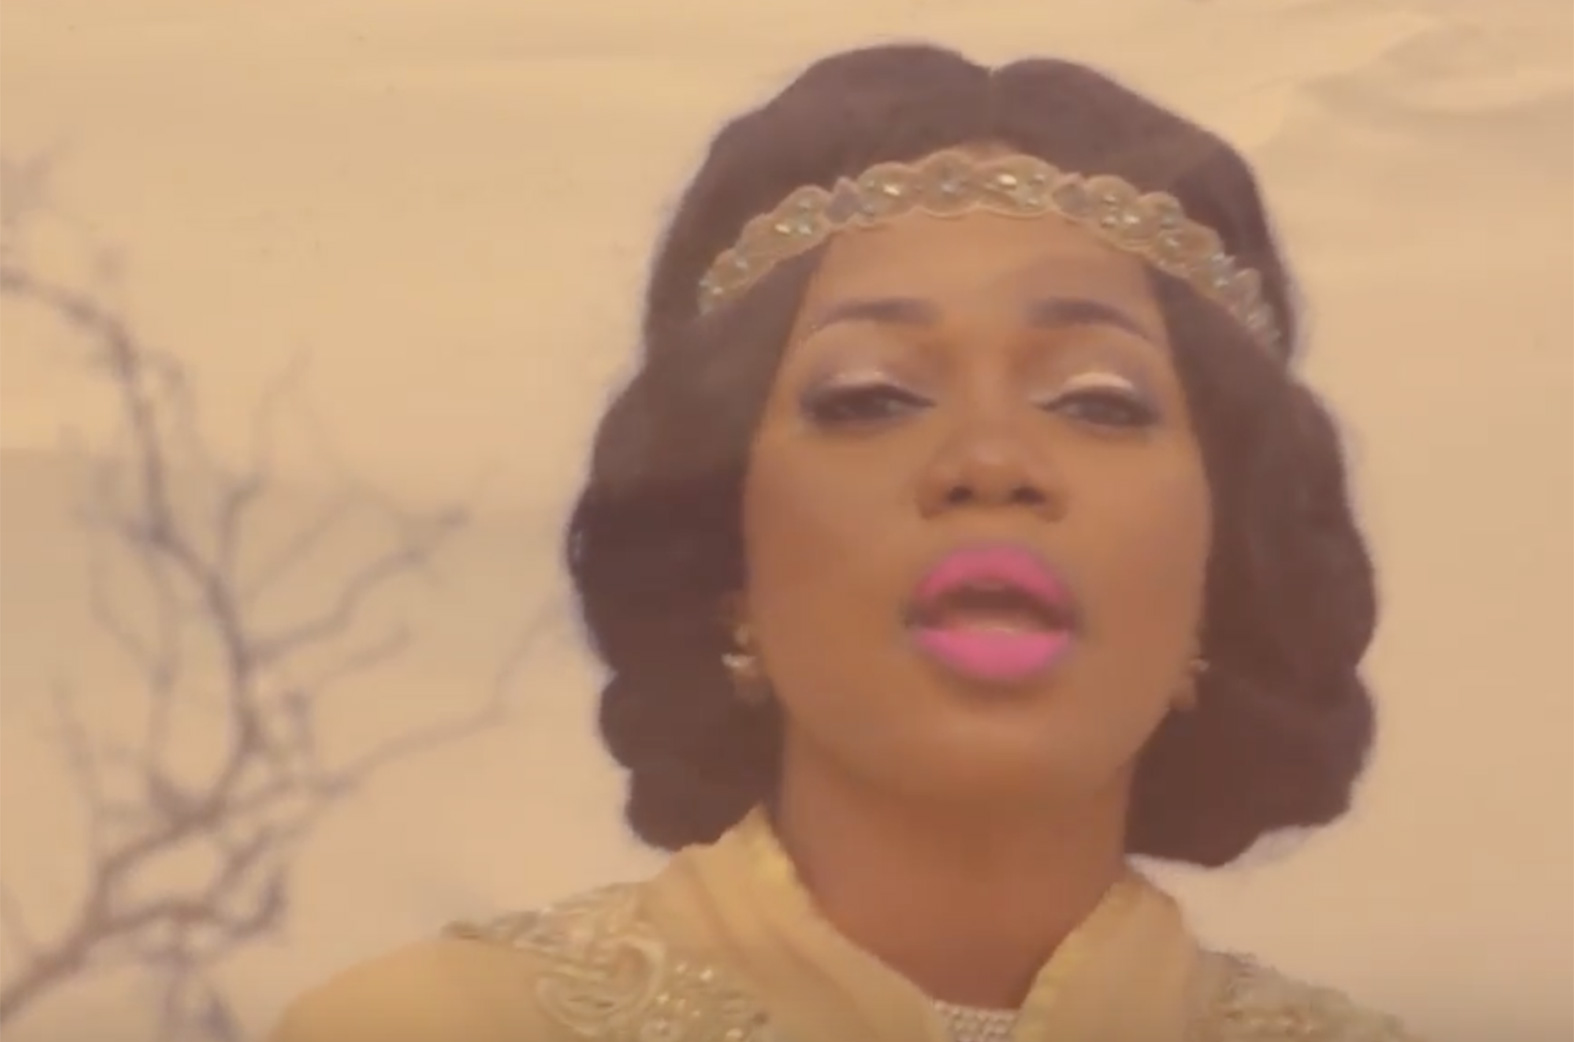 Go Your Way by Mzbel